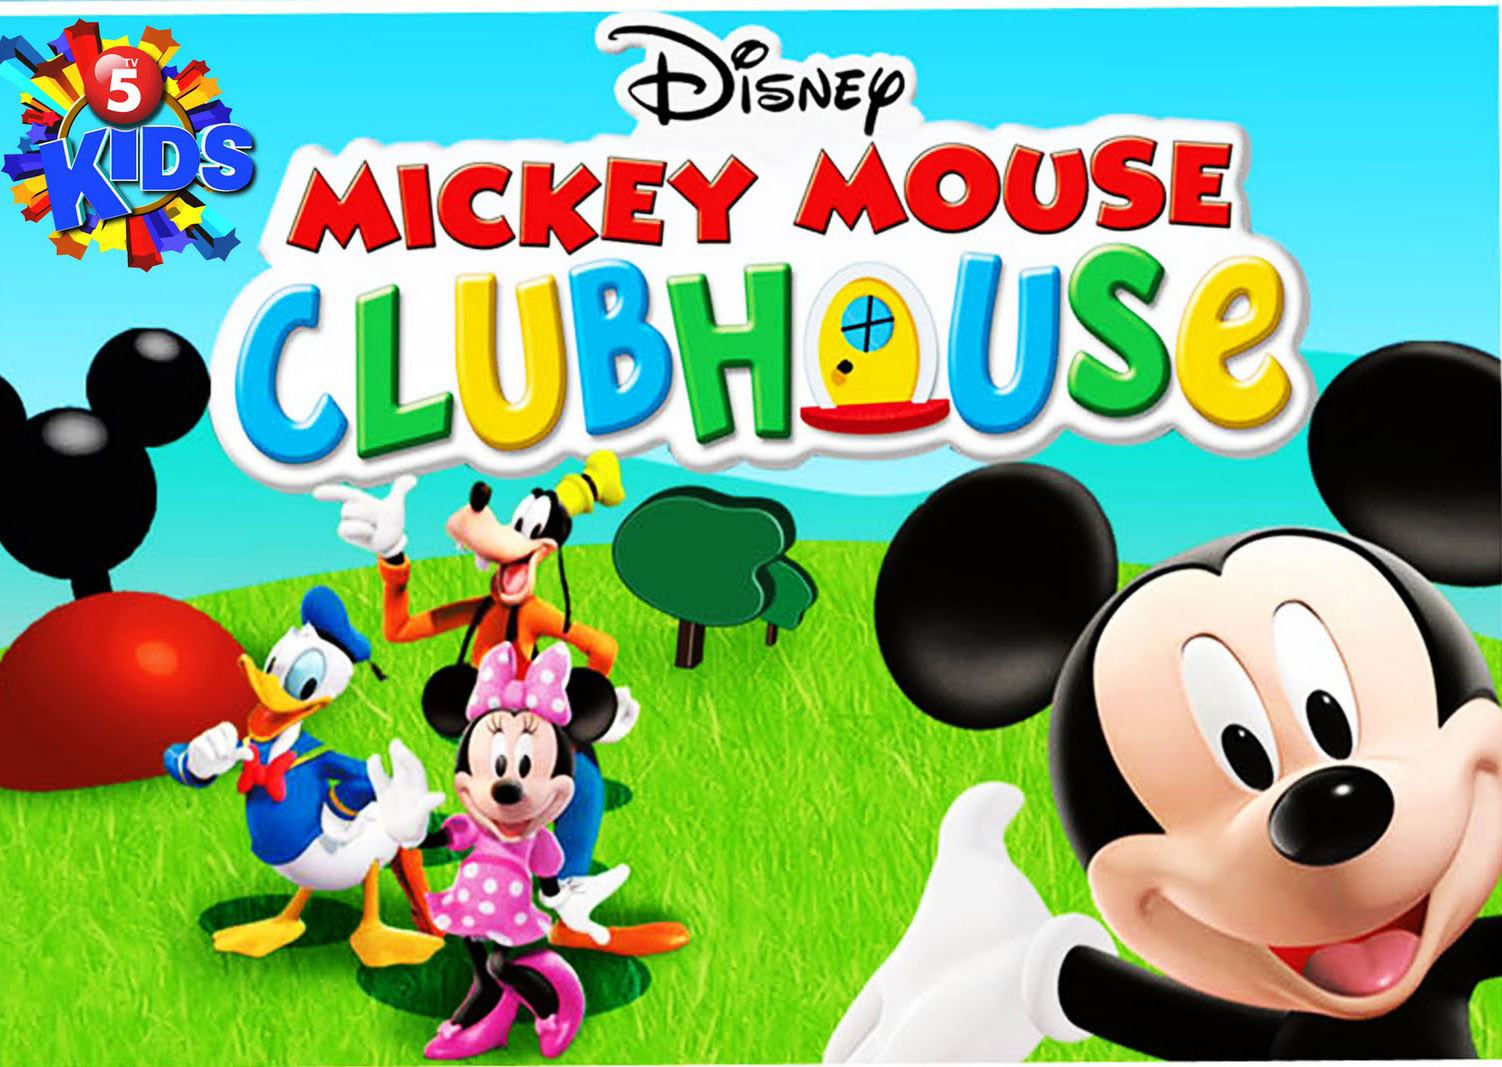 Mickey mouse clubhouse house remarkable